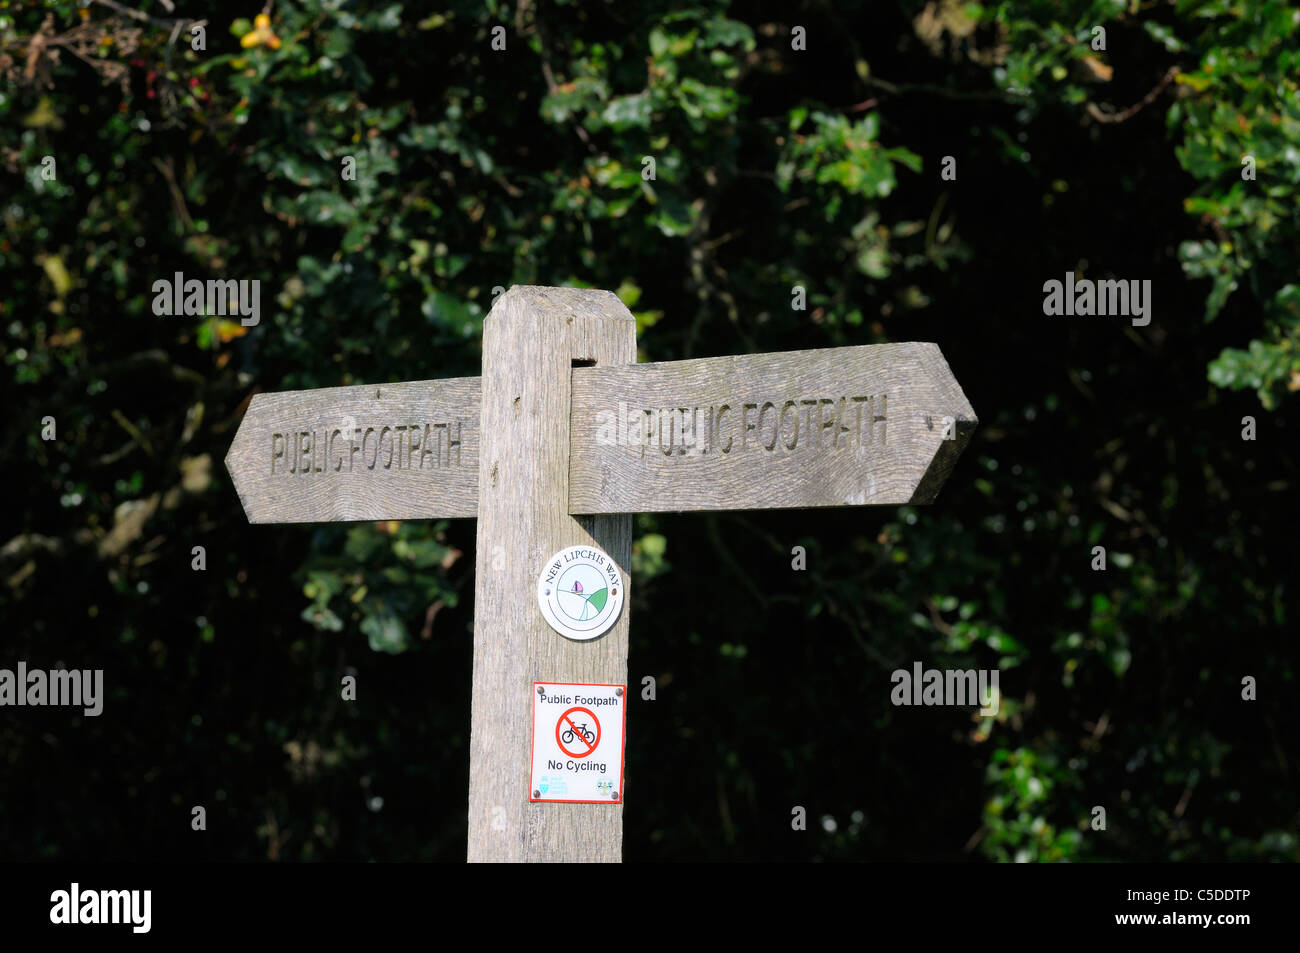 Public Footpath sign - along   Chichester Harbour , Sussex - Stock Image